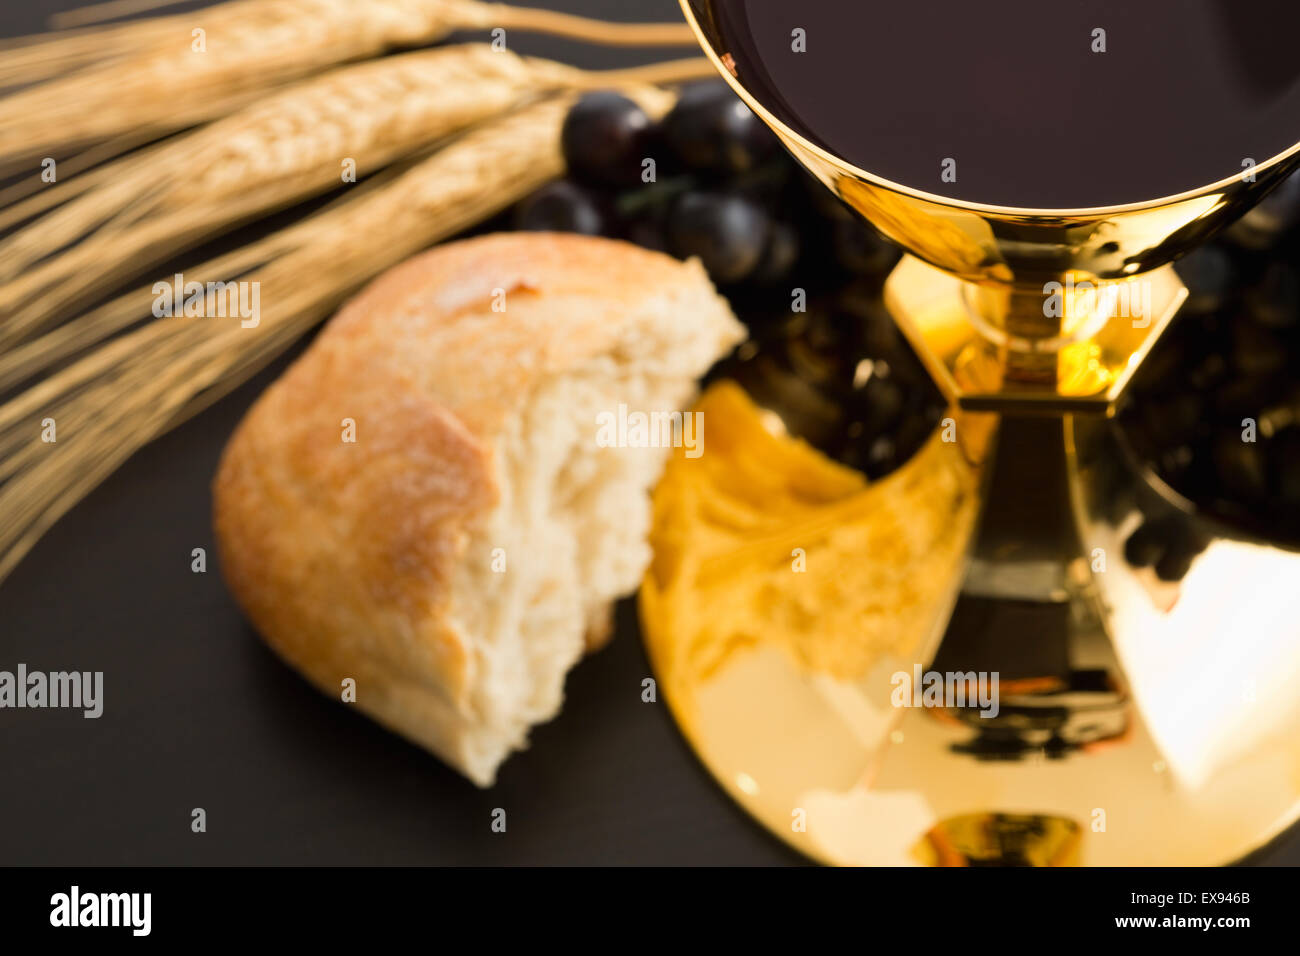 Religious offering, Christianity, gold chalice with wine, grapes, bread and crops - Stock Image